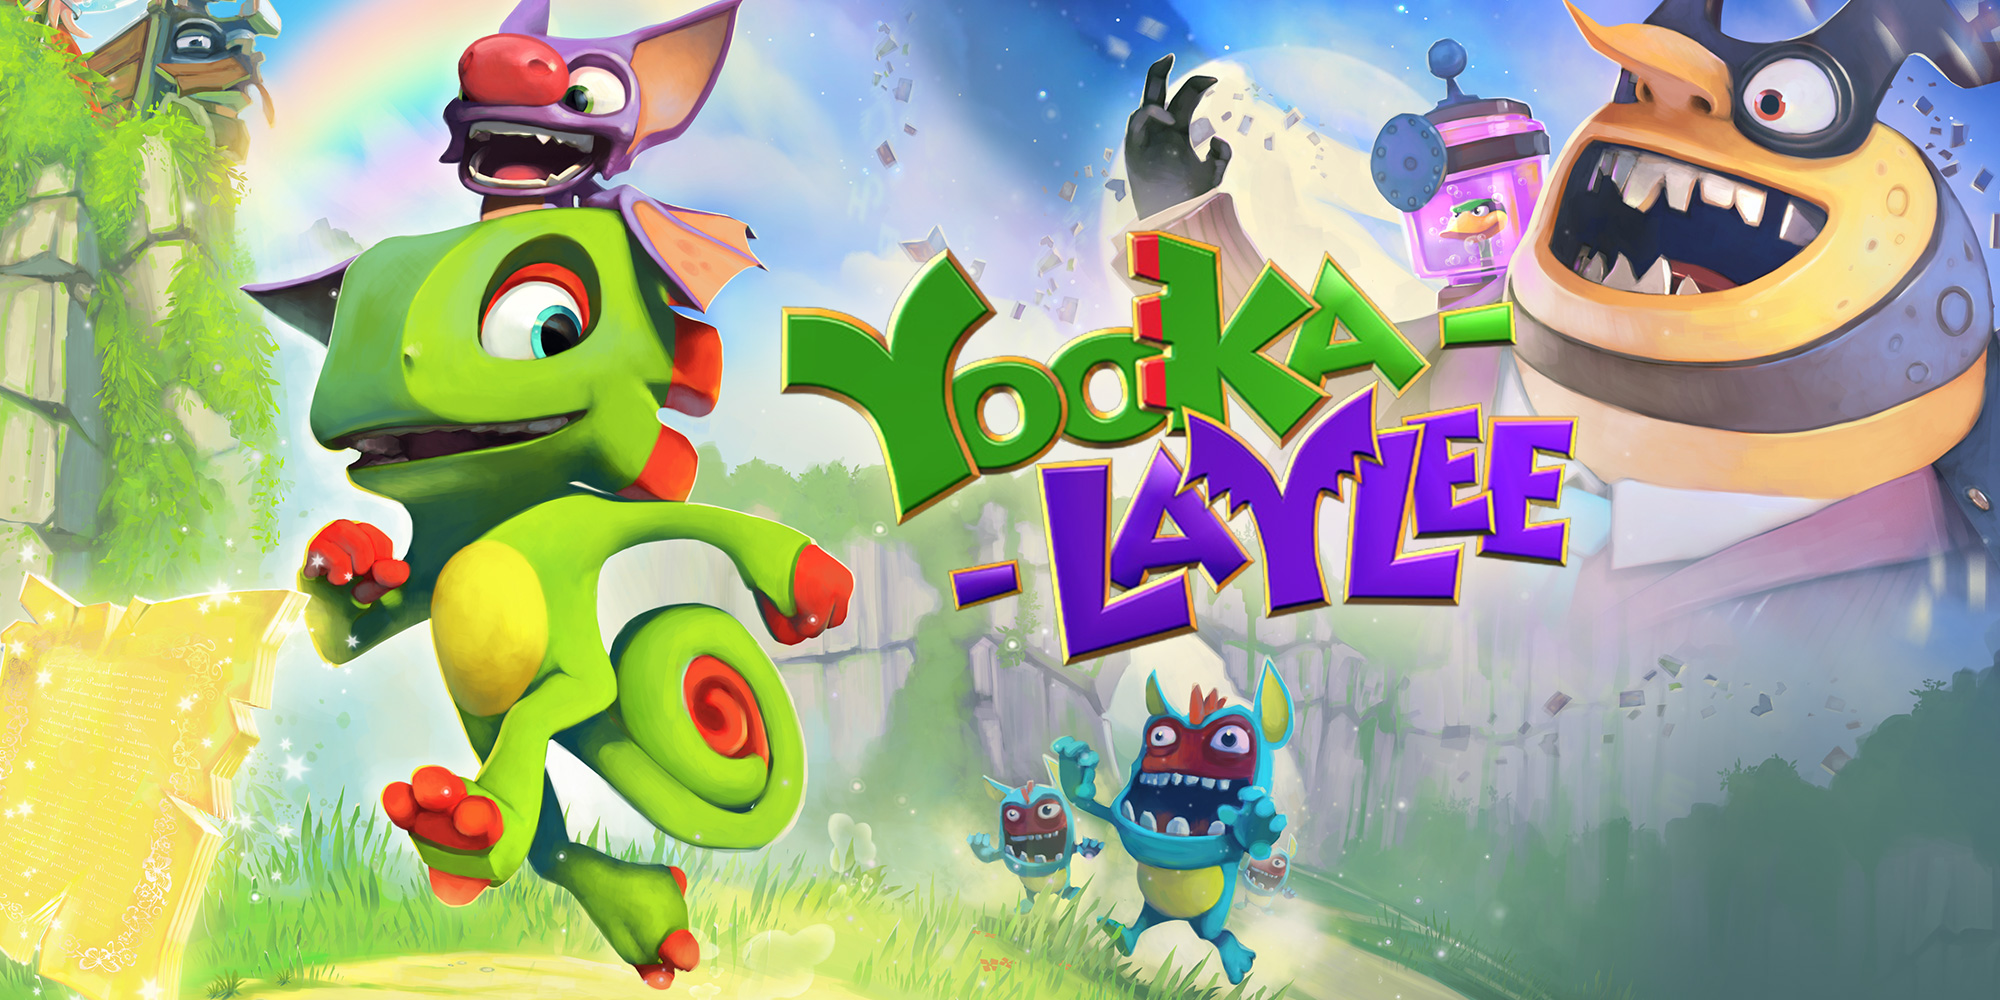 Yooka-Laylee - User interface, character controls development and character movement optimization